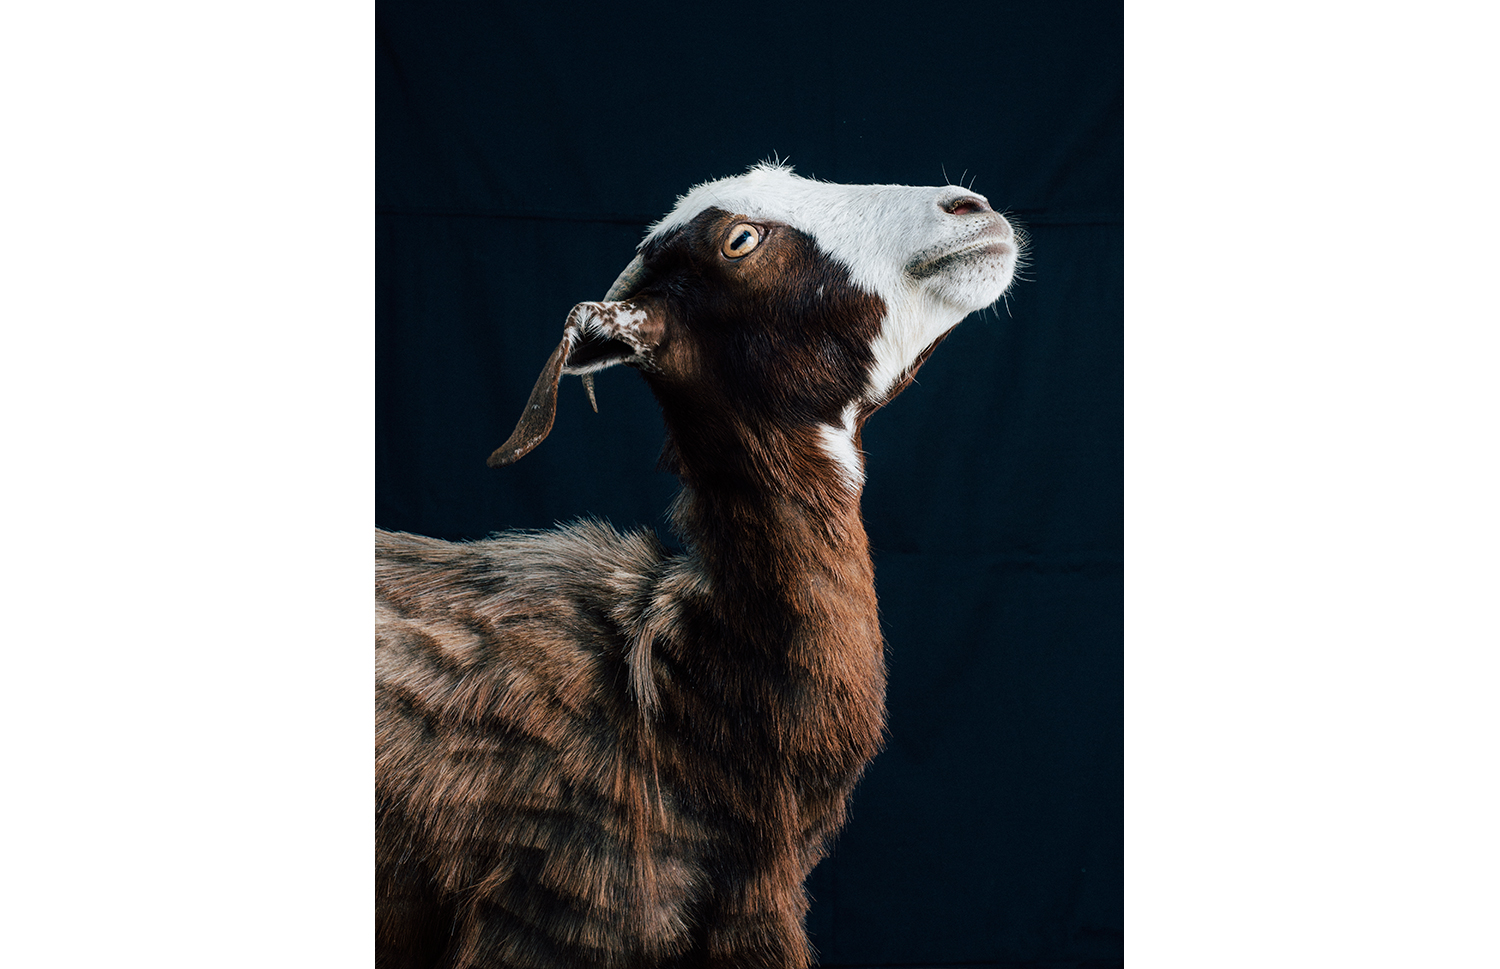 ijfkeridgley-oman-goat-portrait10.jpg